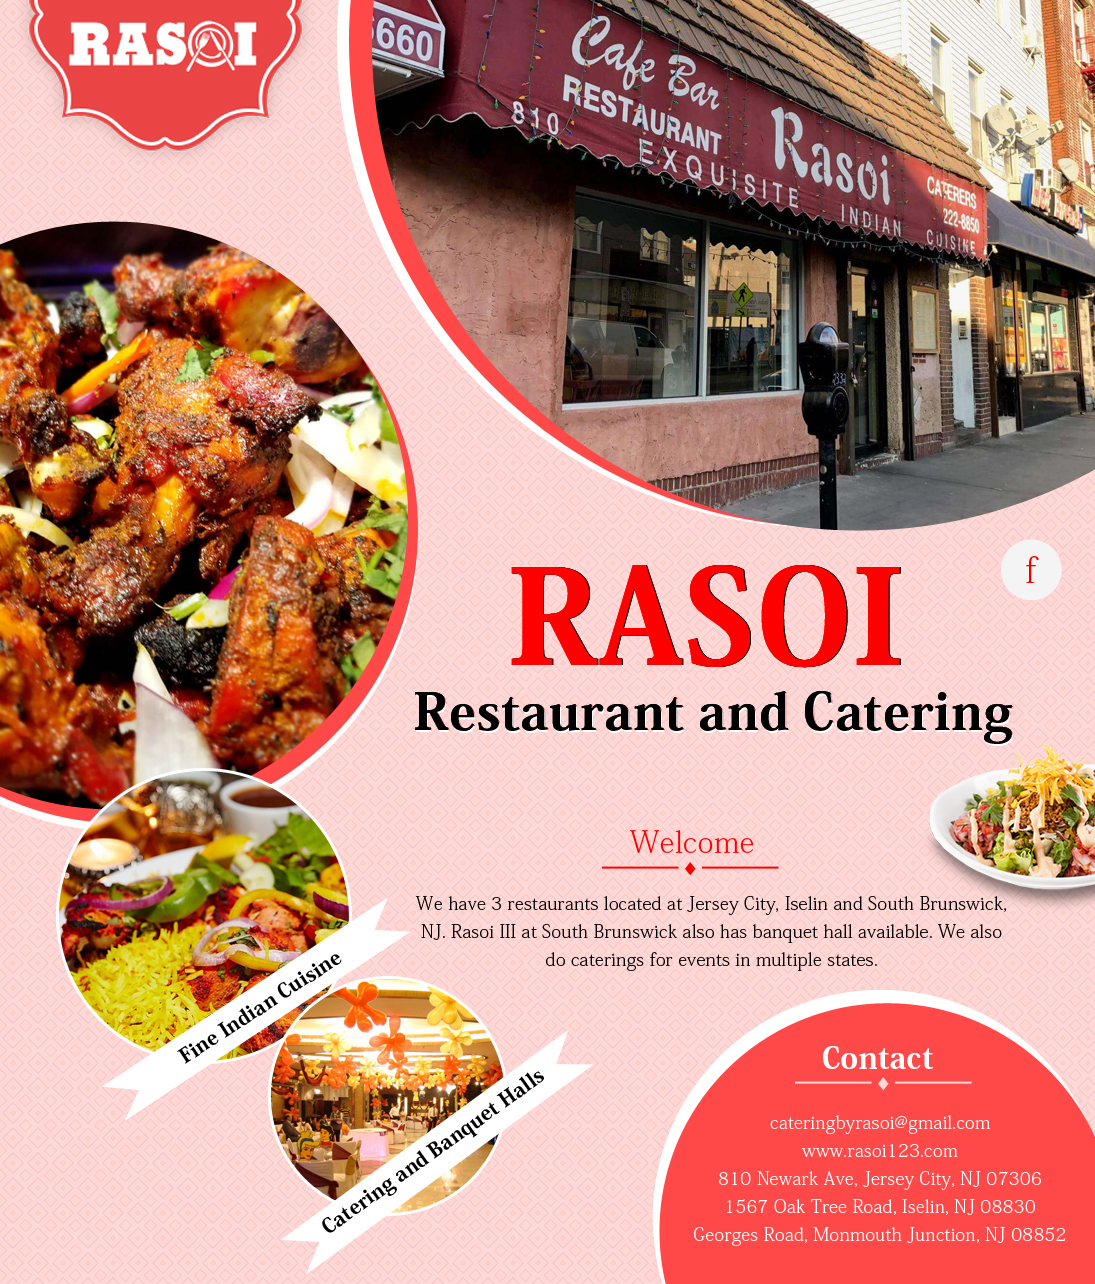 Miraculous Rasoi Indian Restaurant And Catering In Jersey City Nj Best Image Libraries Barepthycampuscom